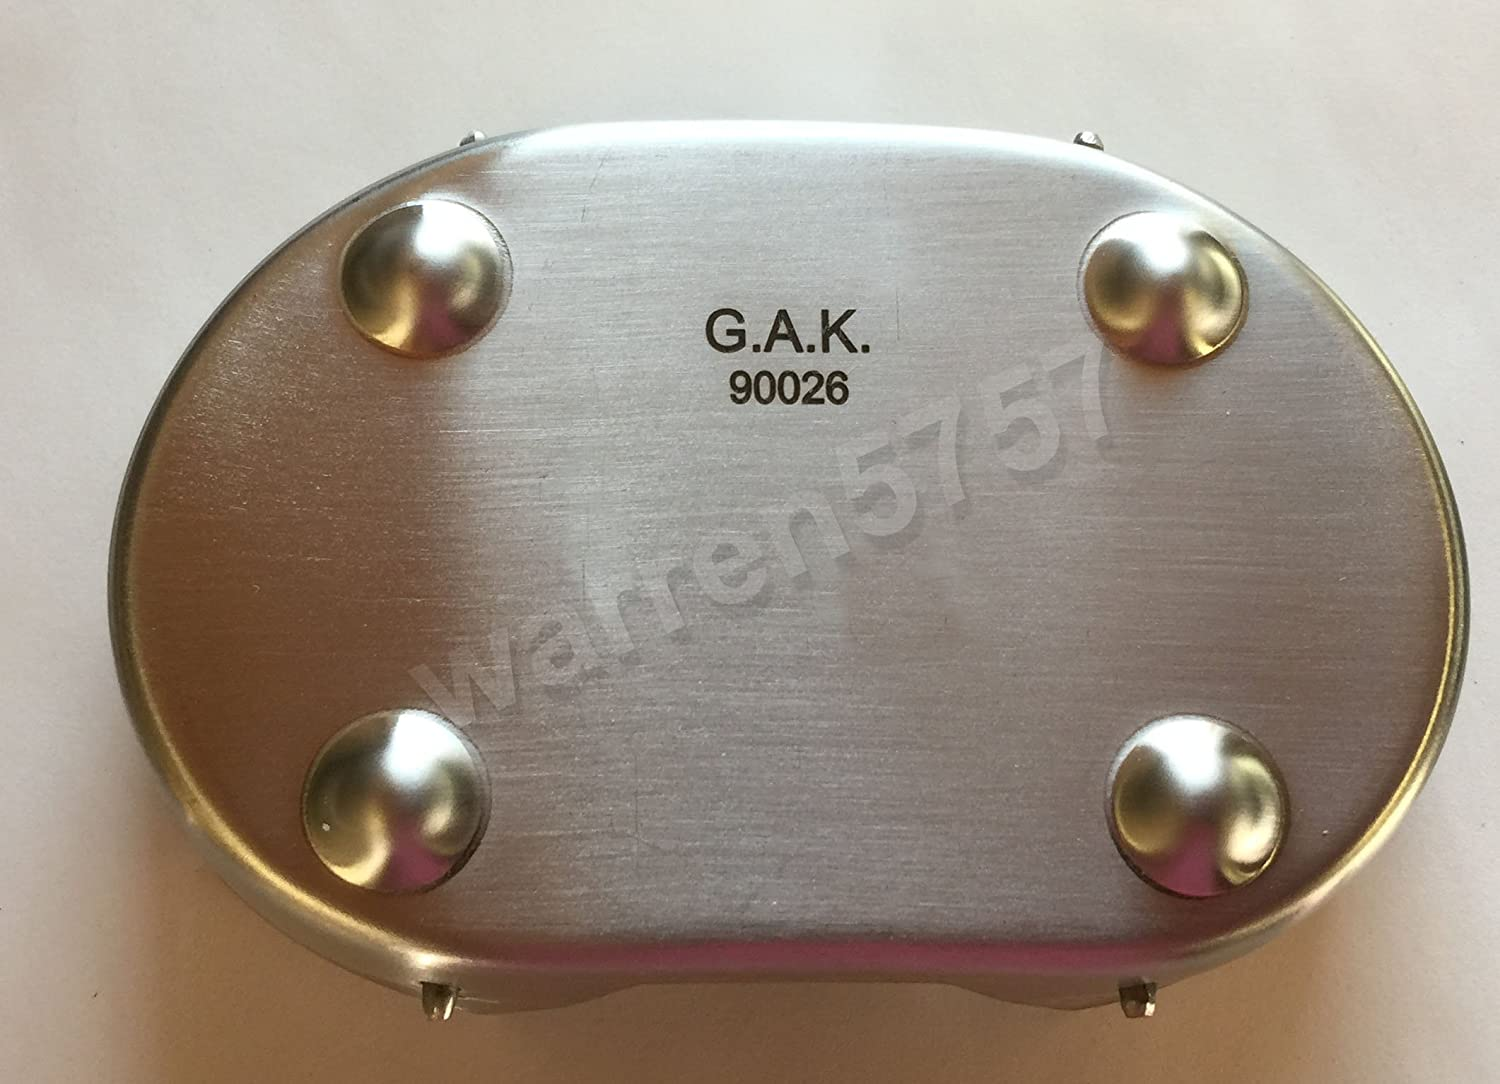 G.A.K Canteen Cup Stand Stove Foldable.